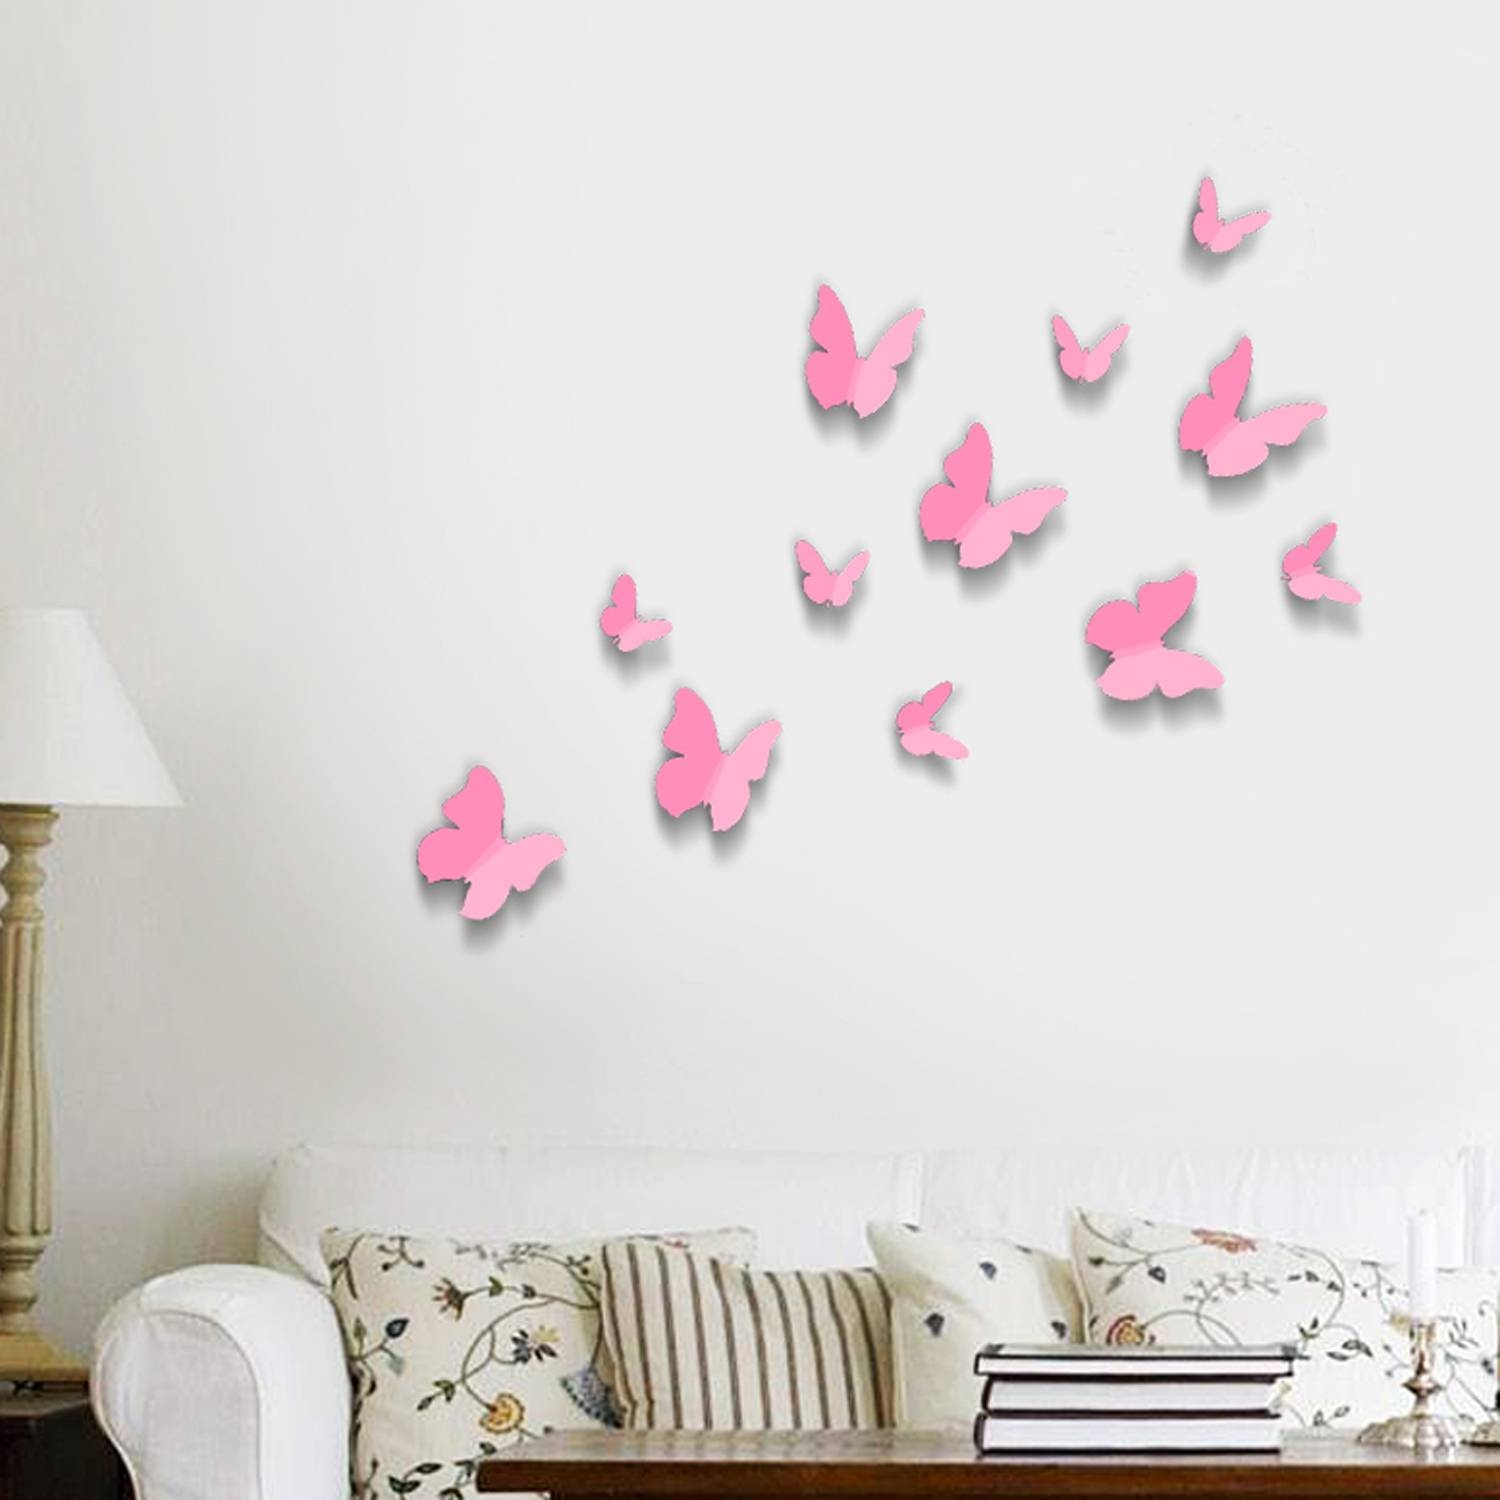 Pink 3d Butterflies Wall Art Stickers Pertaining To Most Current Butterflies 3d Wall Art (View 2 of 20)